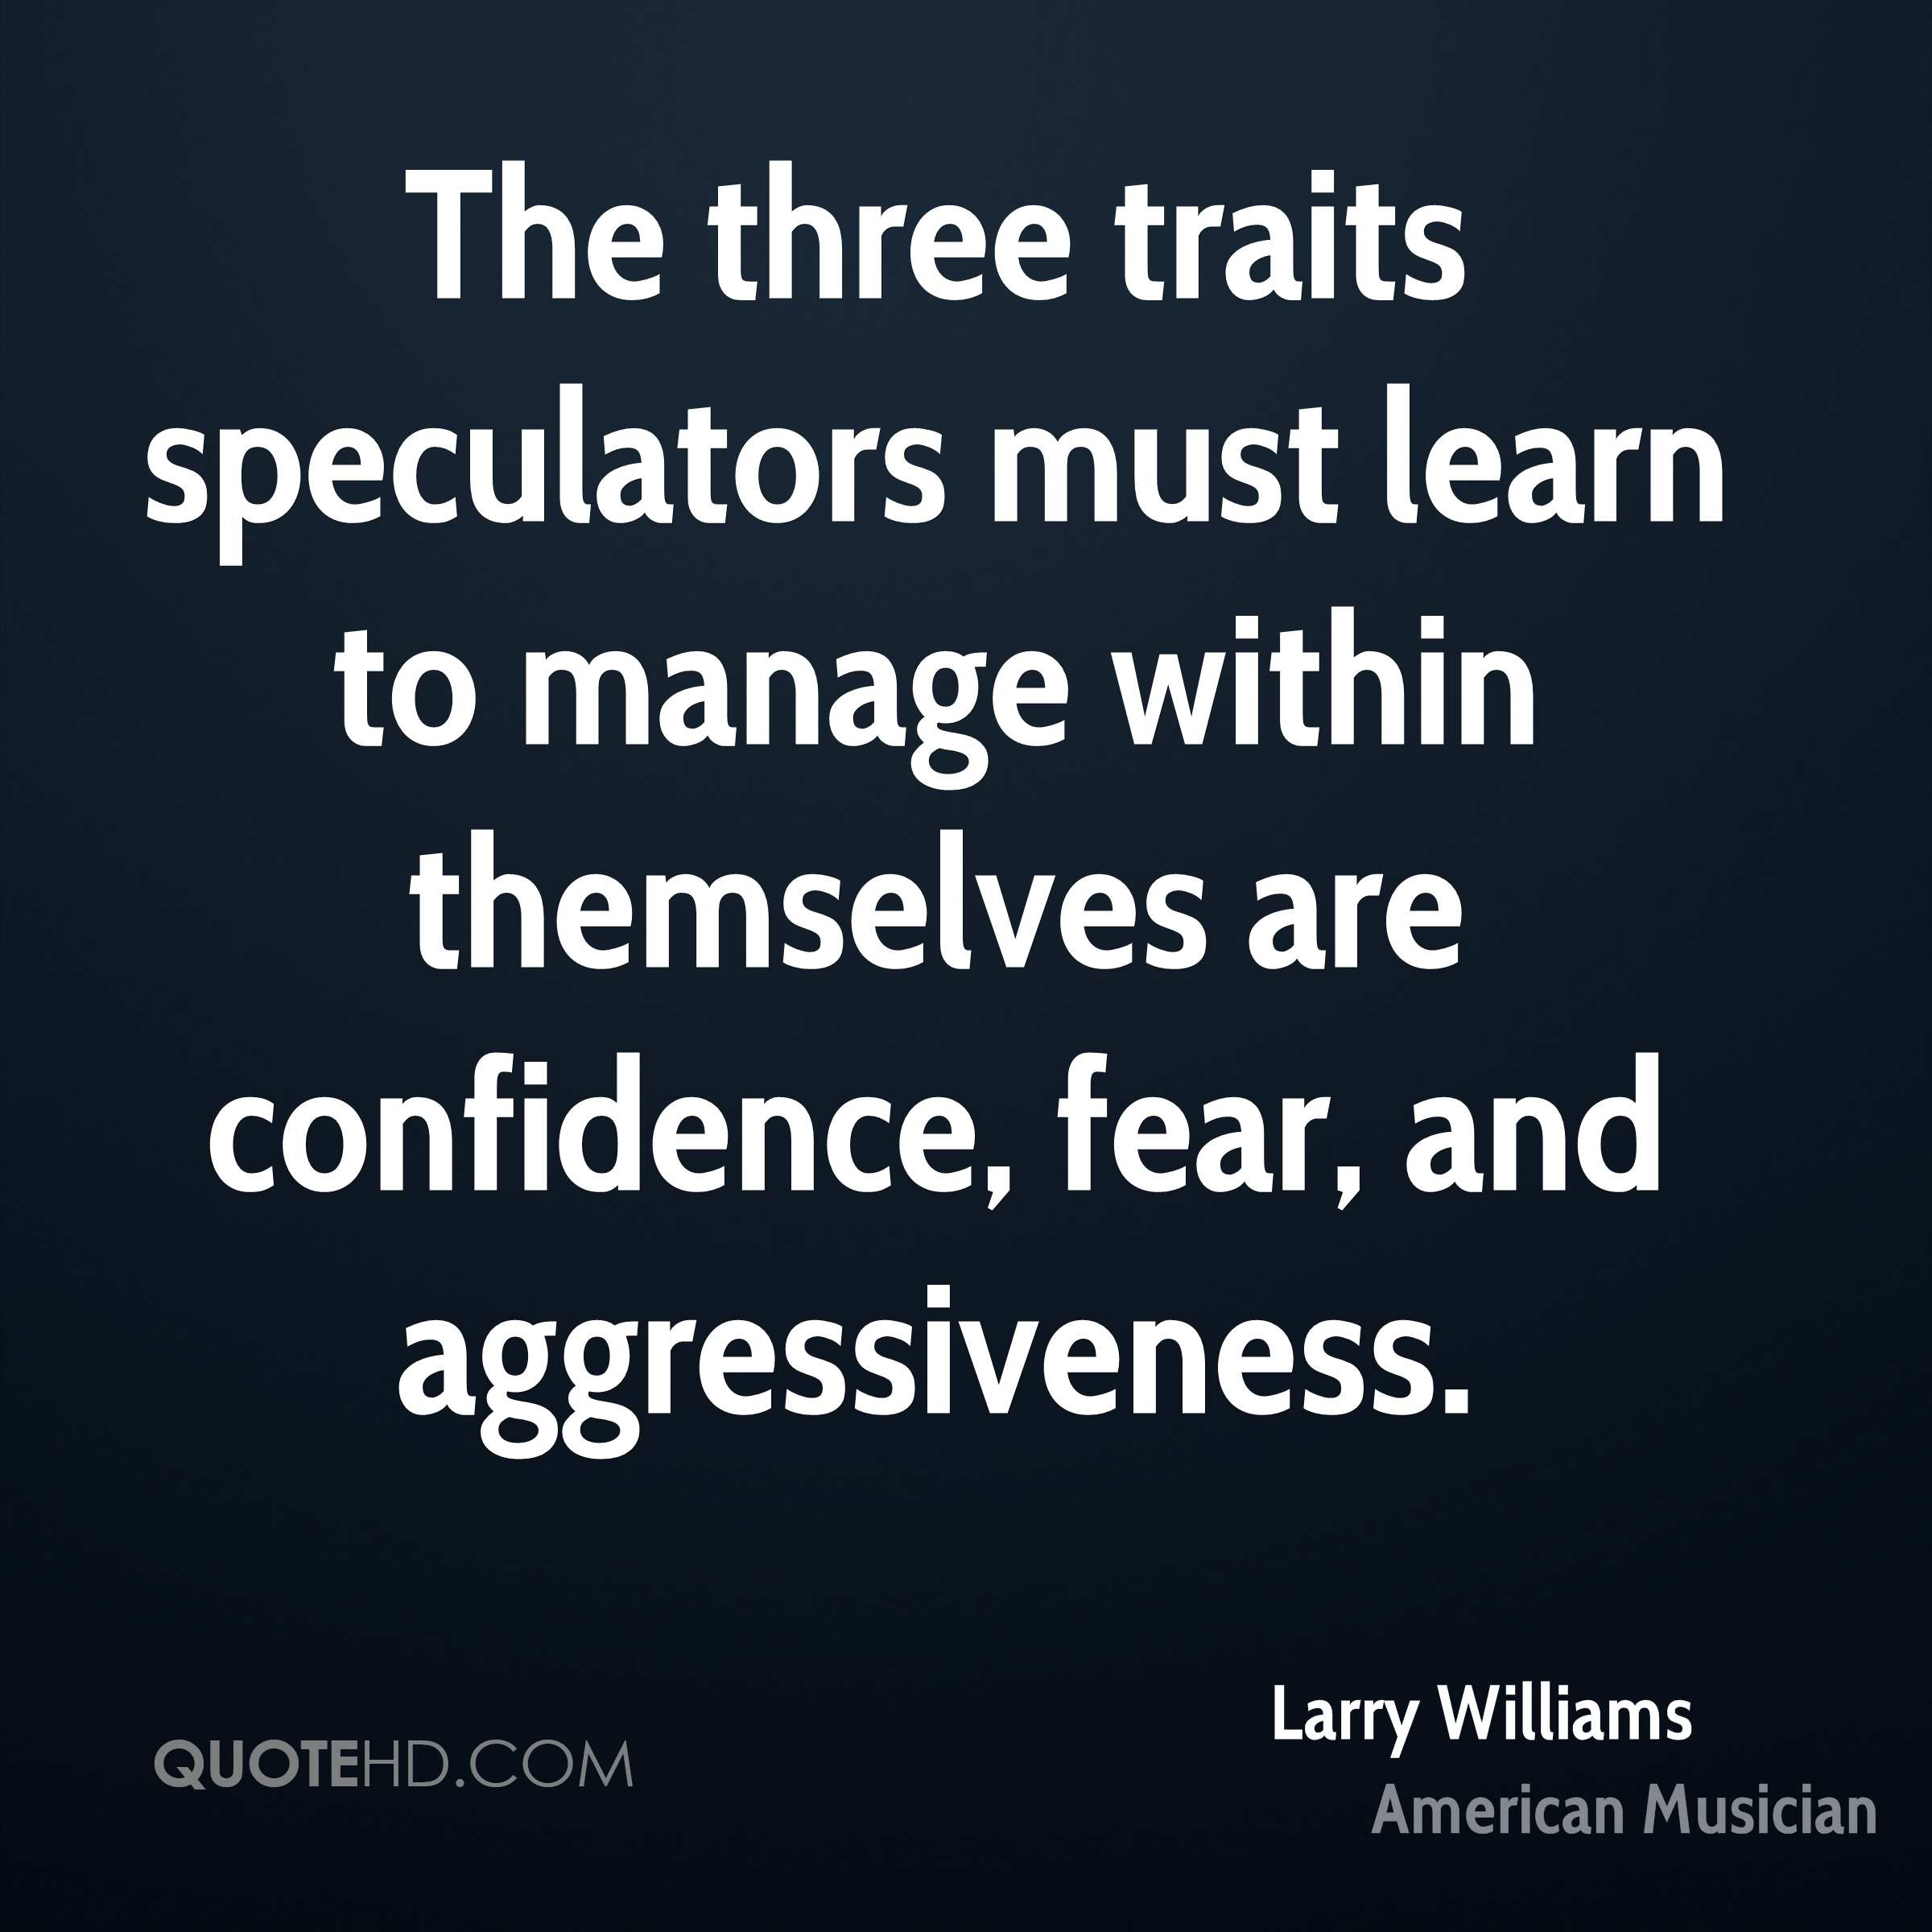 The three traits speculators must learn to manage within themselves are confidence, fear, and aggressiveness.